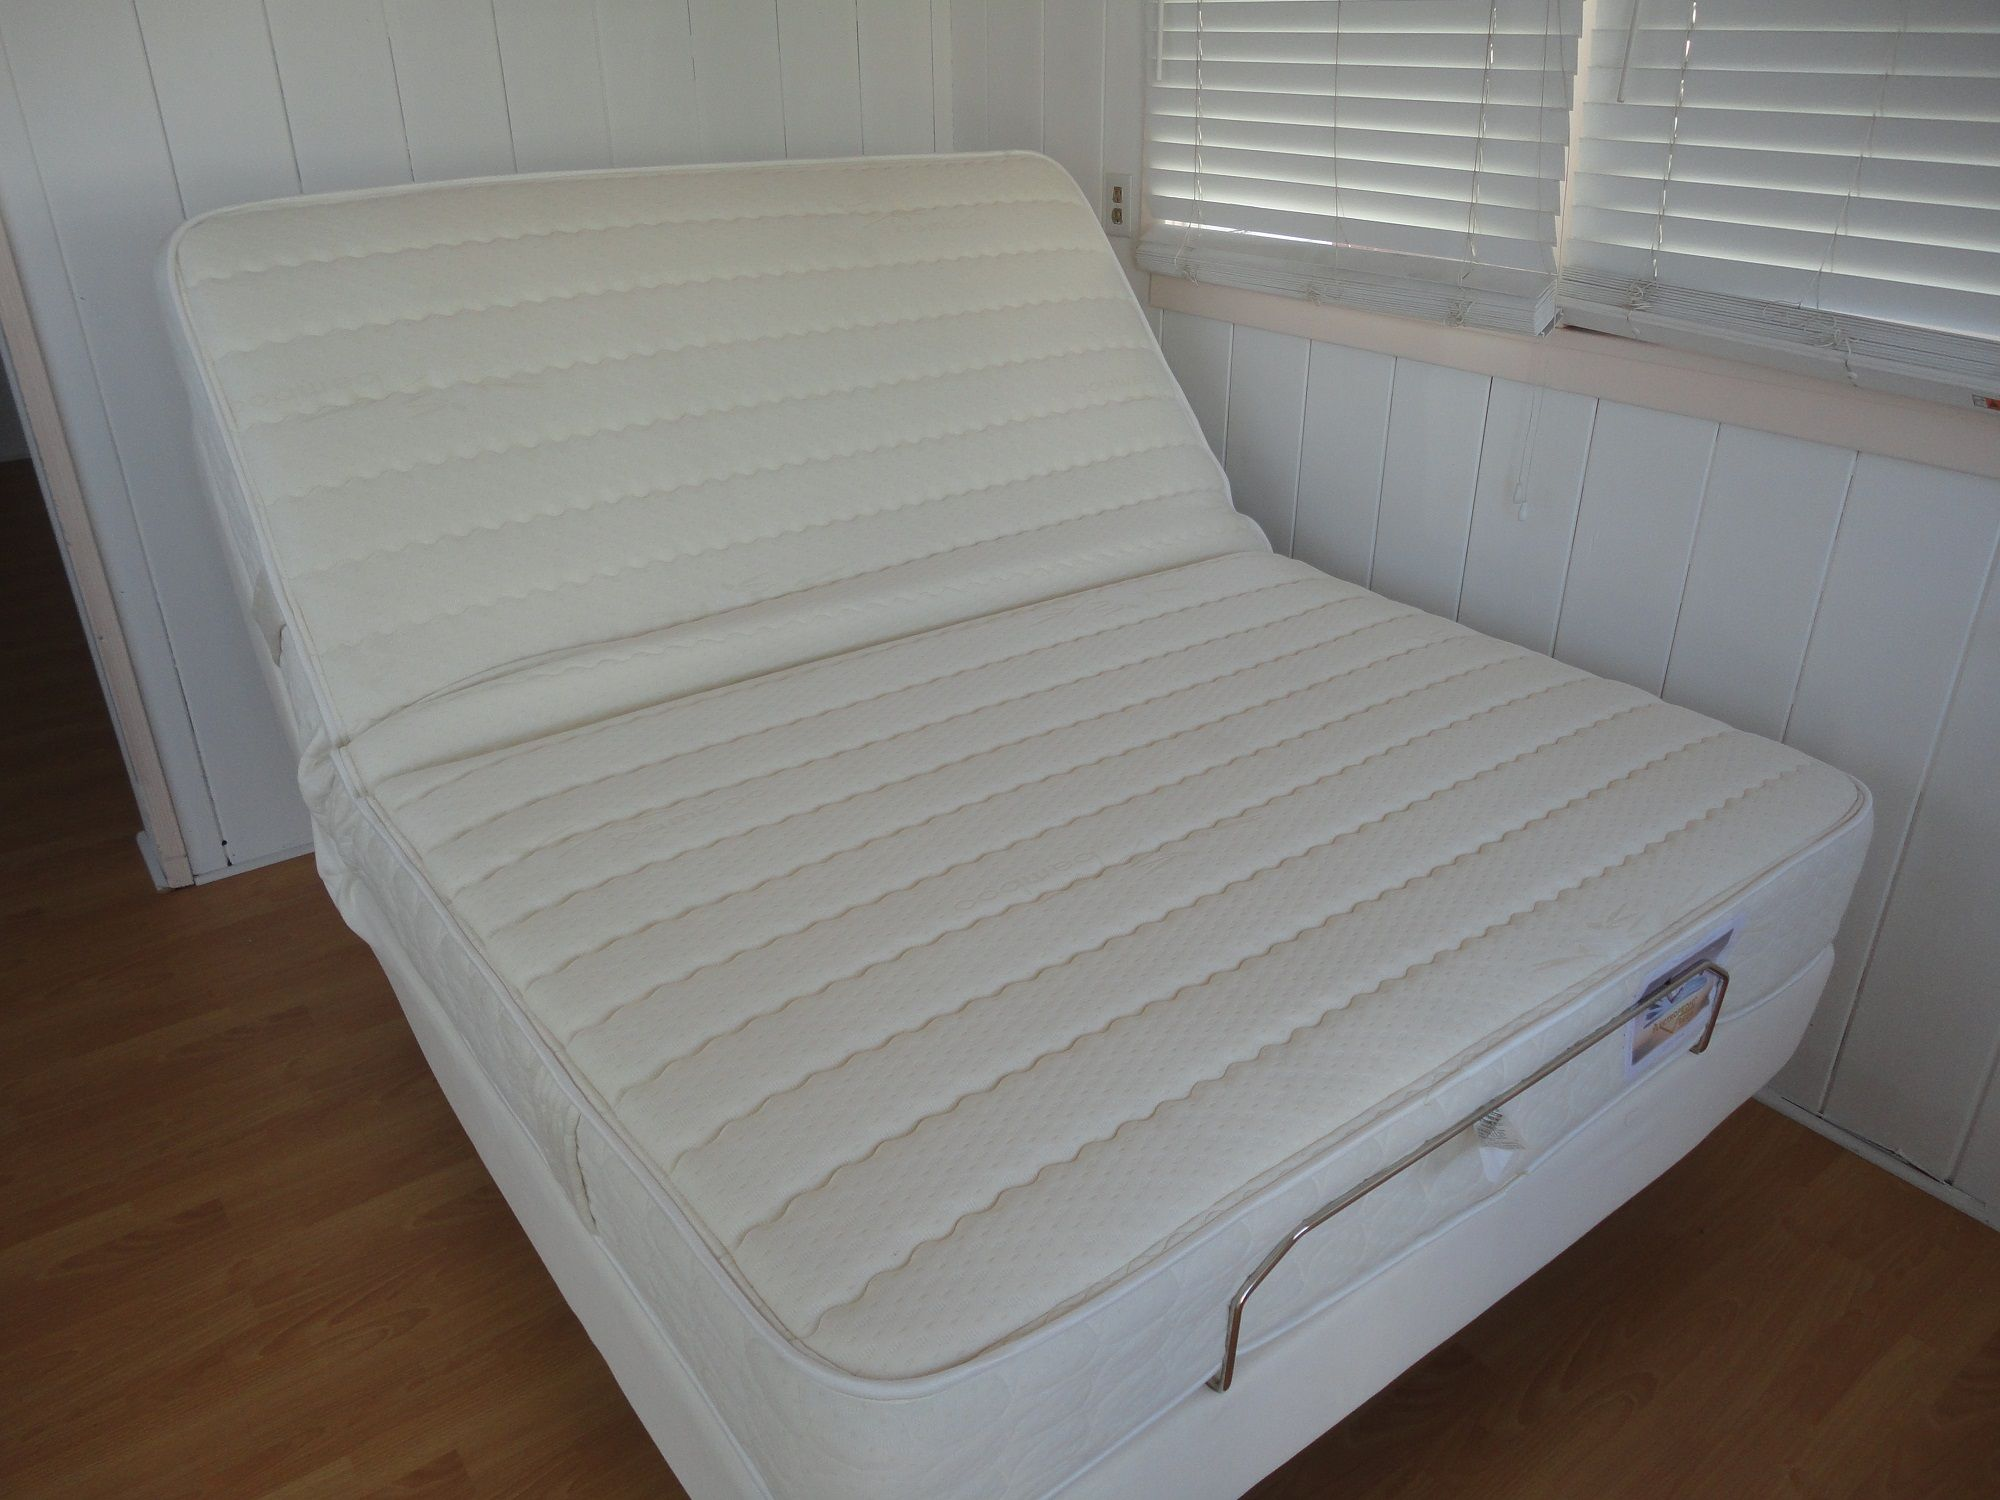 Bedroom Bedroom Queen Size Electric Bed Automatic